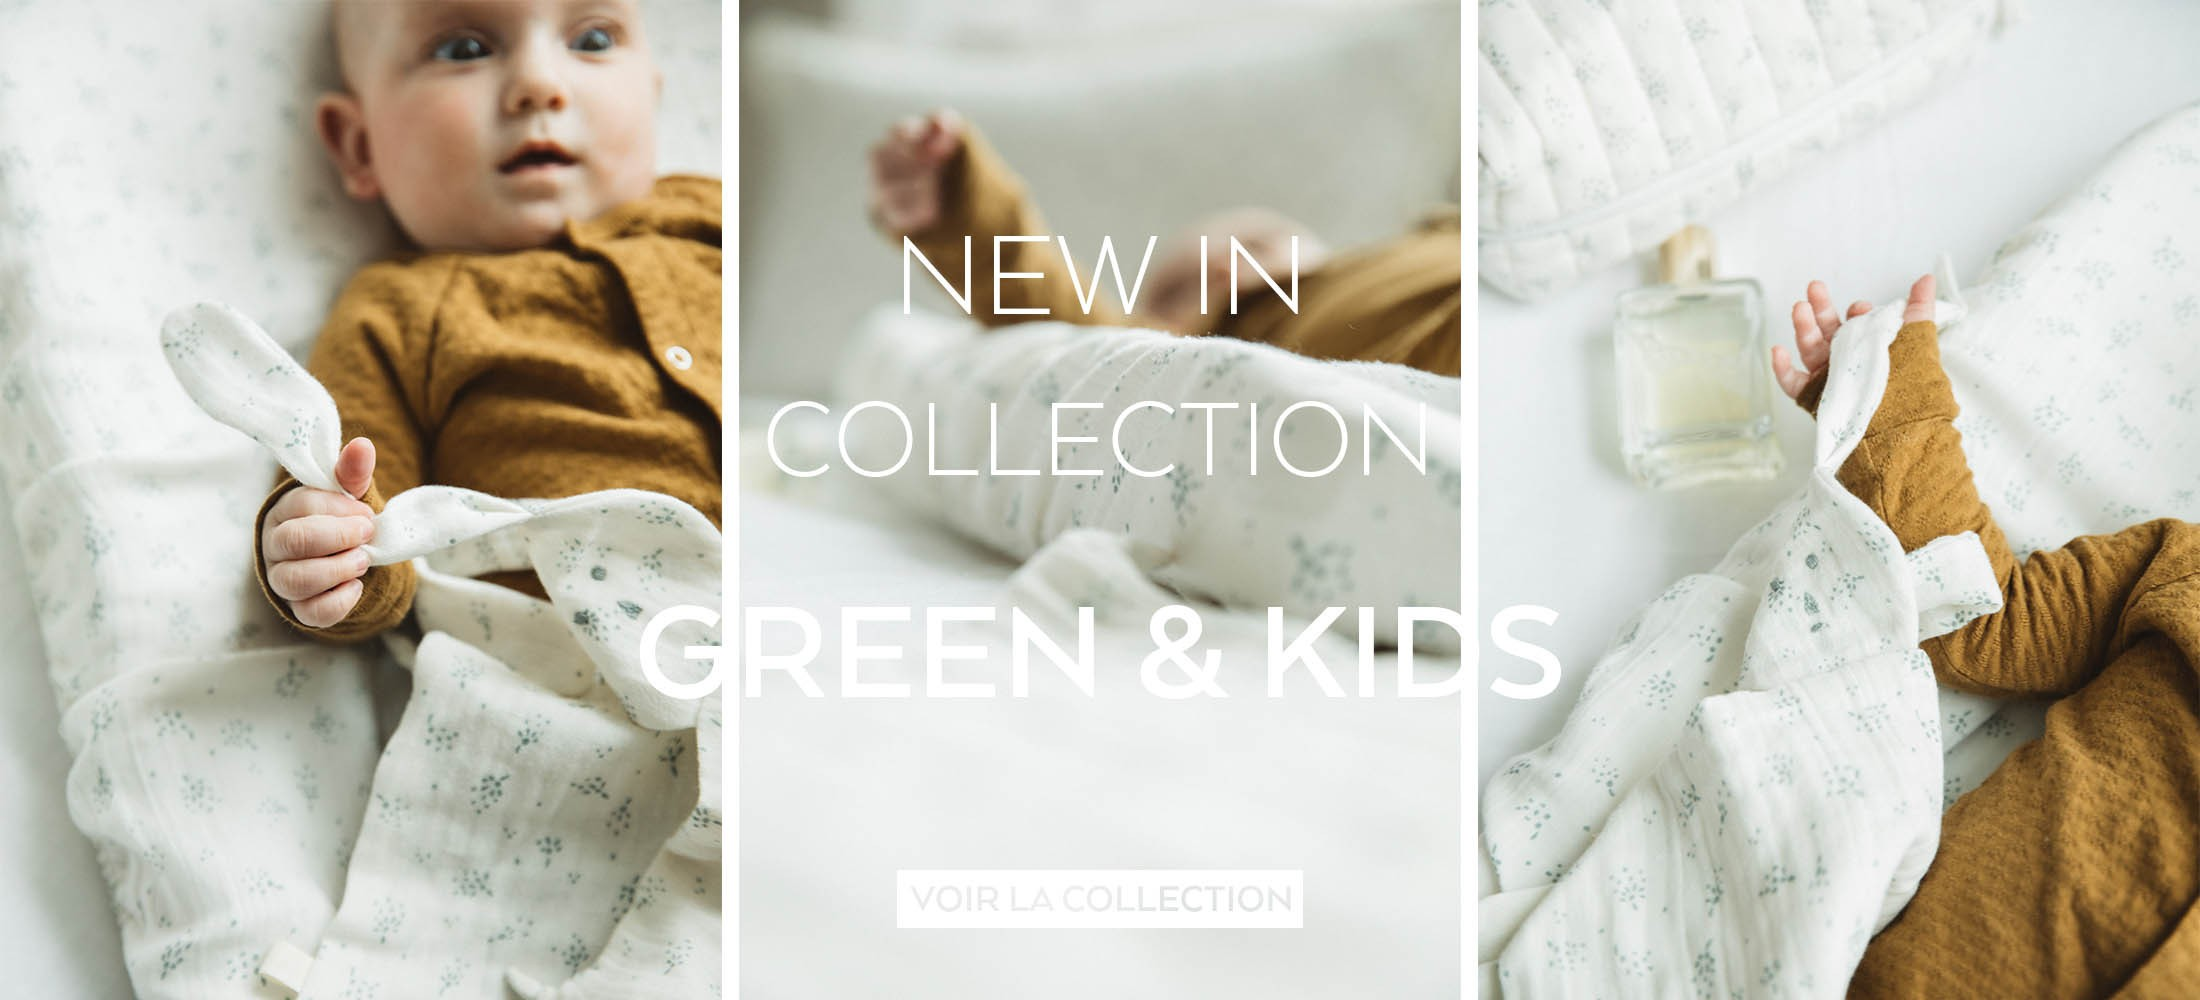 Green & kids new in